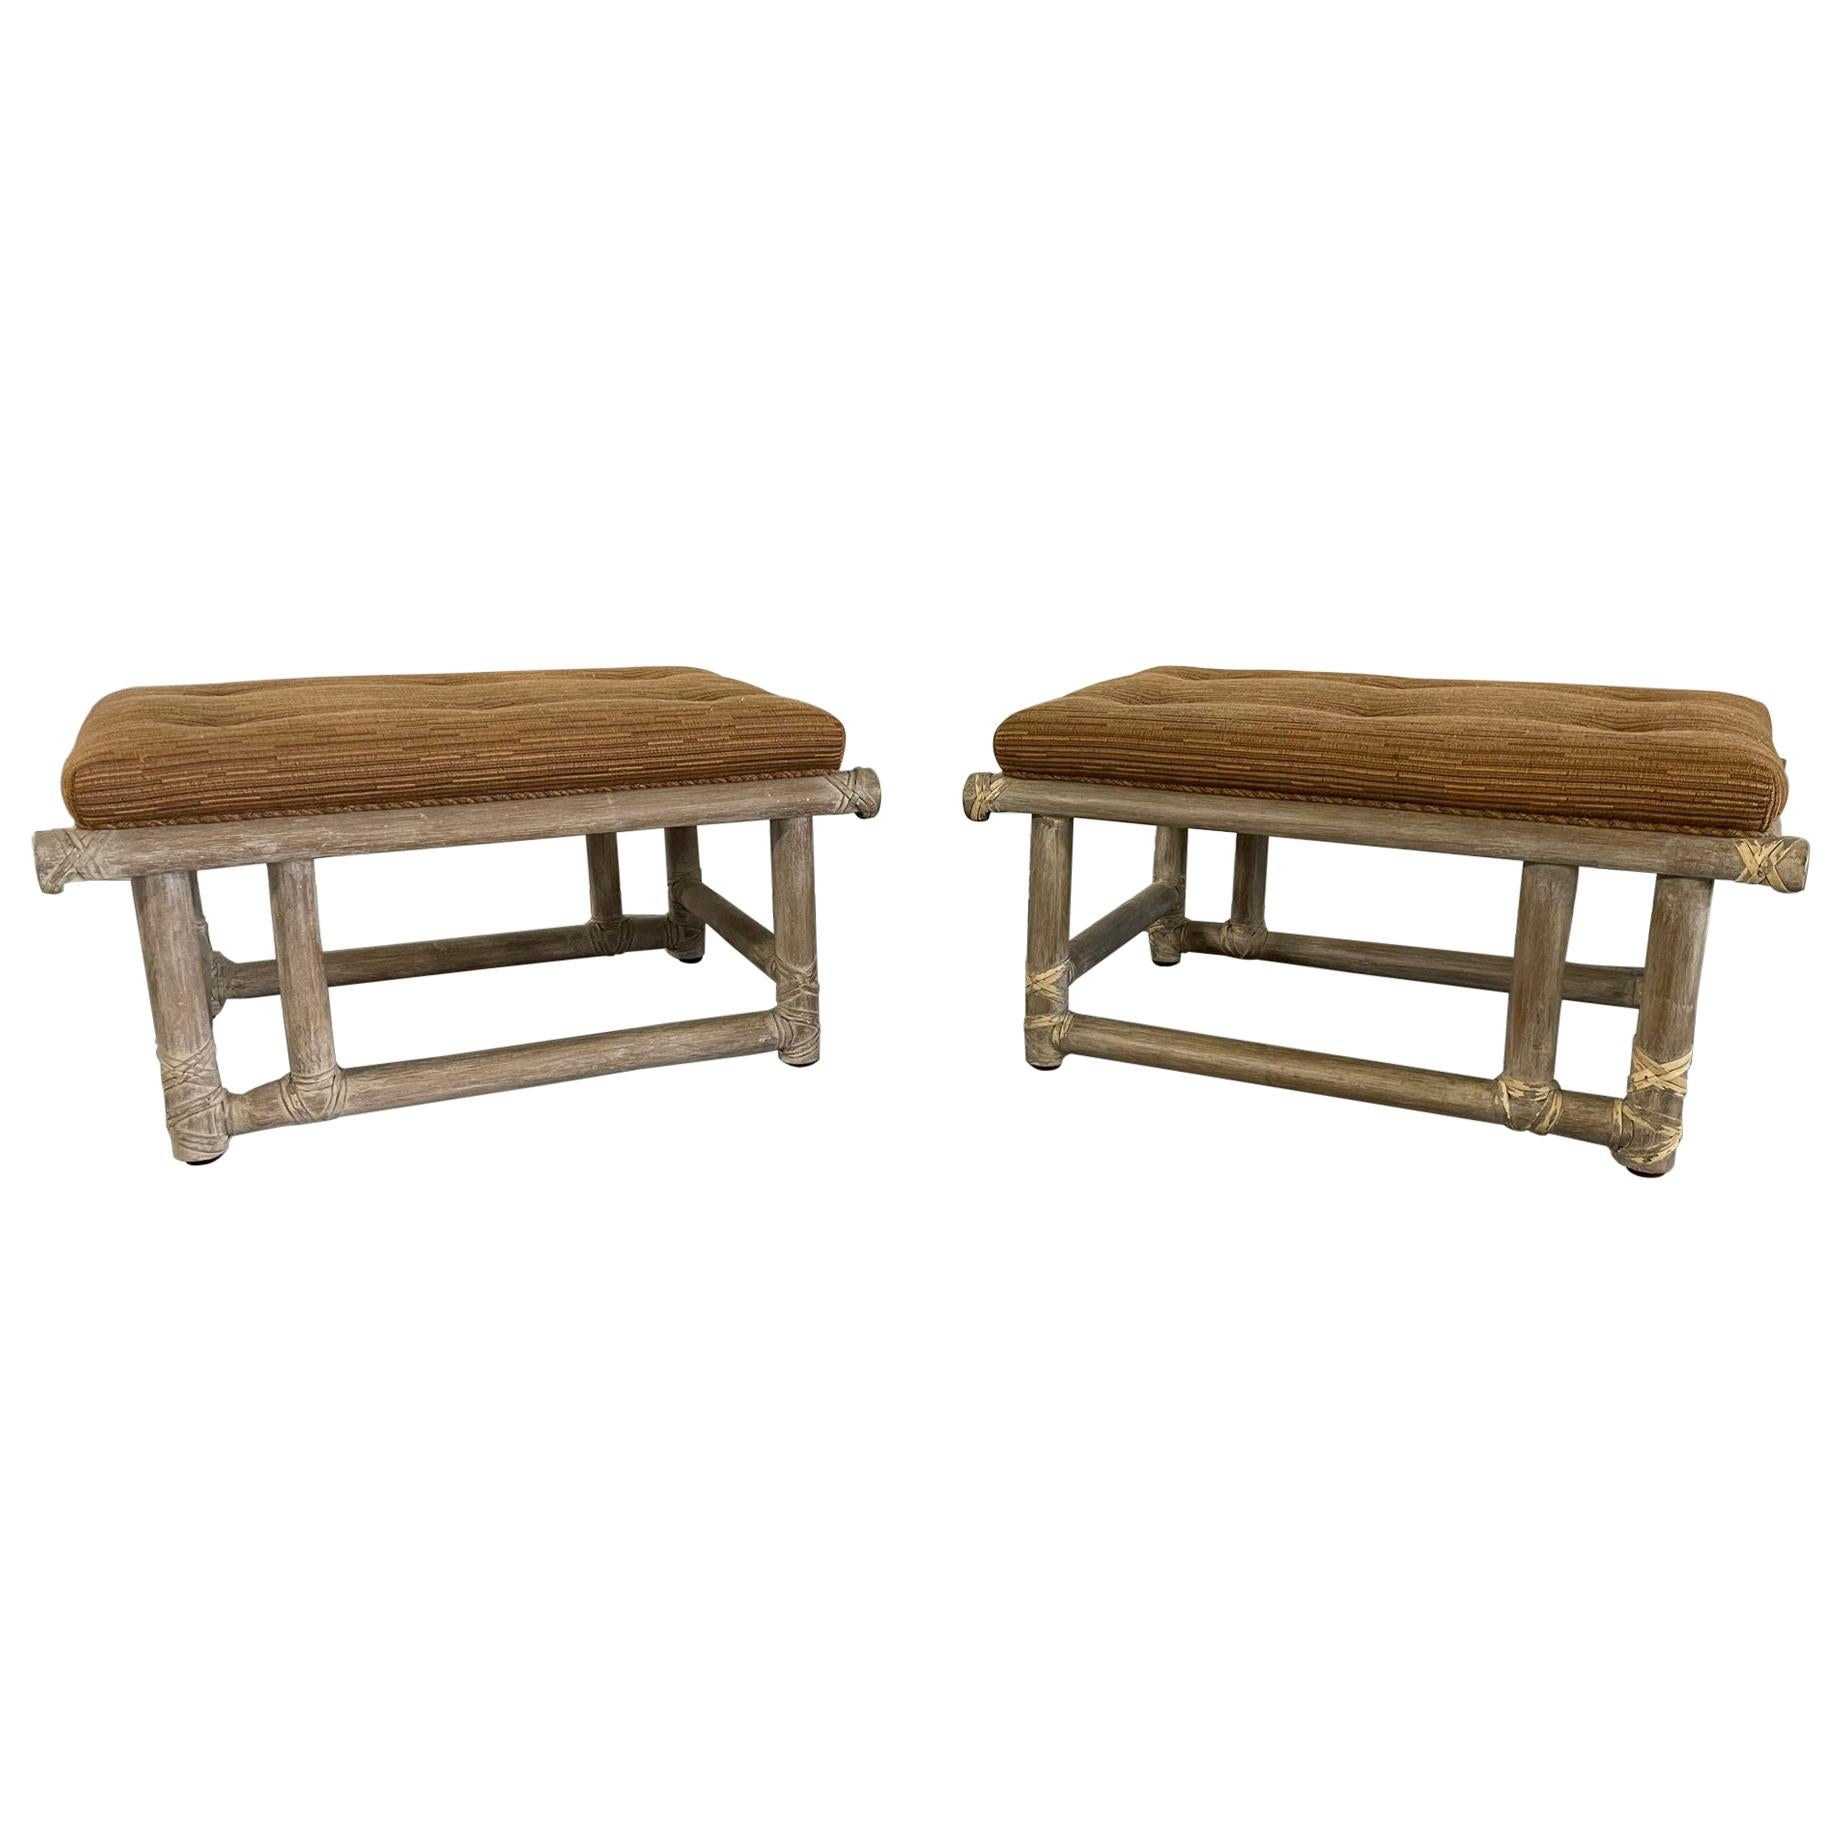 Pair of McGuire Mid-Century Lacquered Bamboo Ottomans or Foot Stools